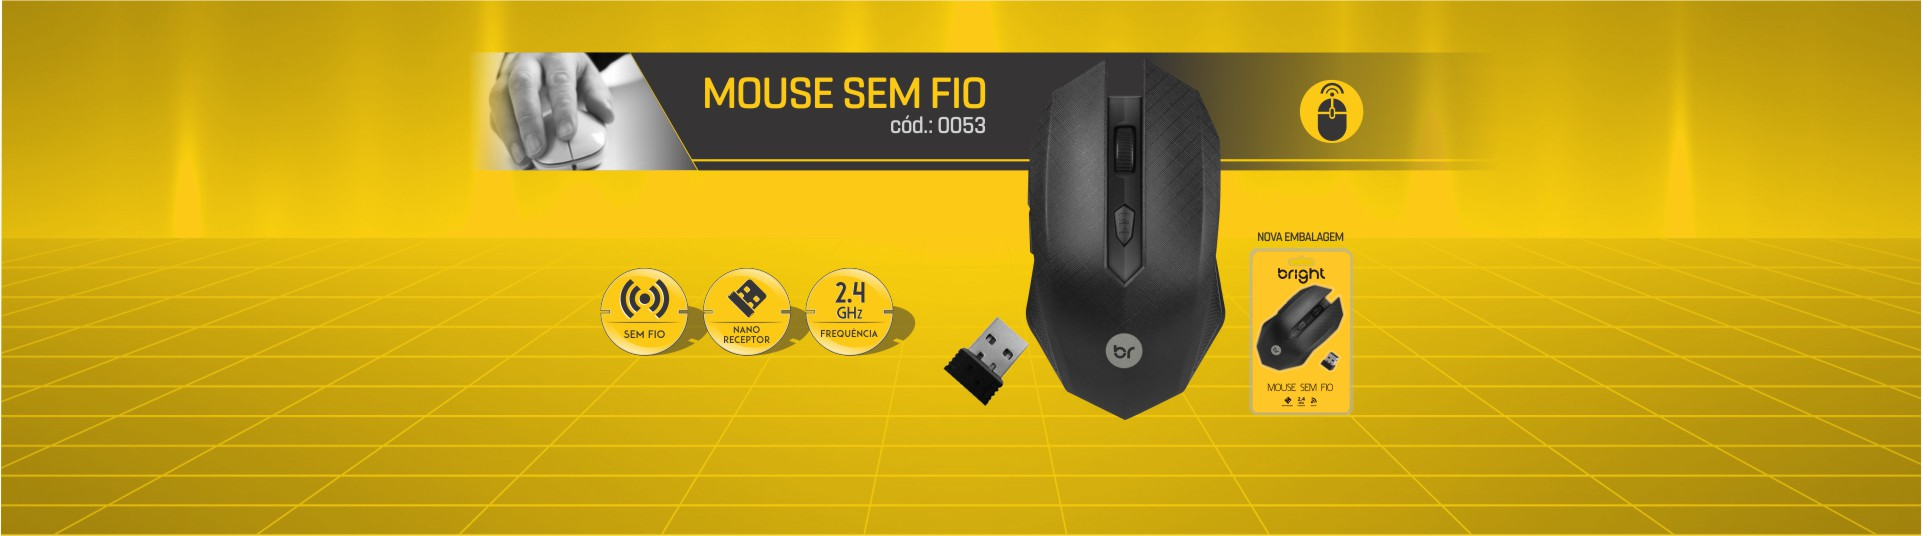 banner_BRIGHT_MOUSE-SEM-FIO-0053